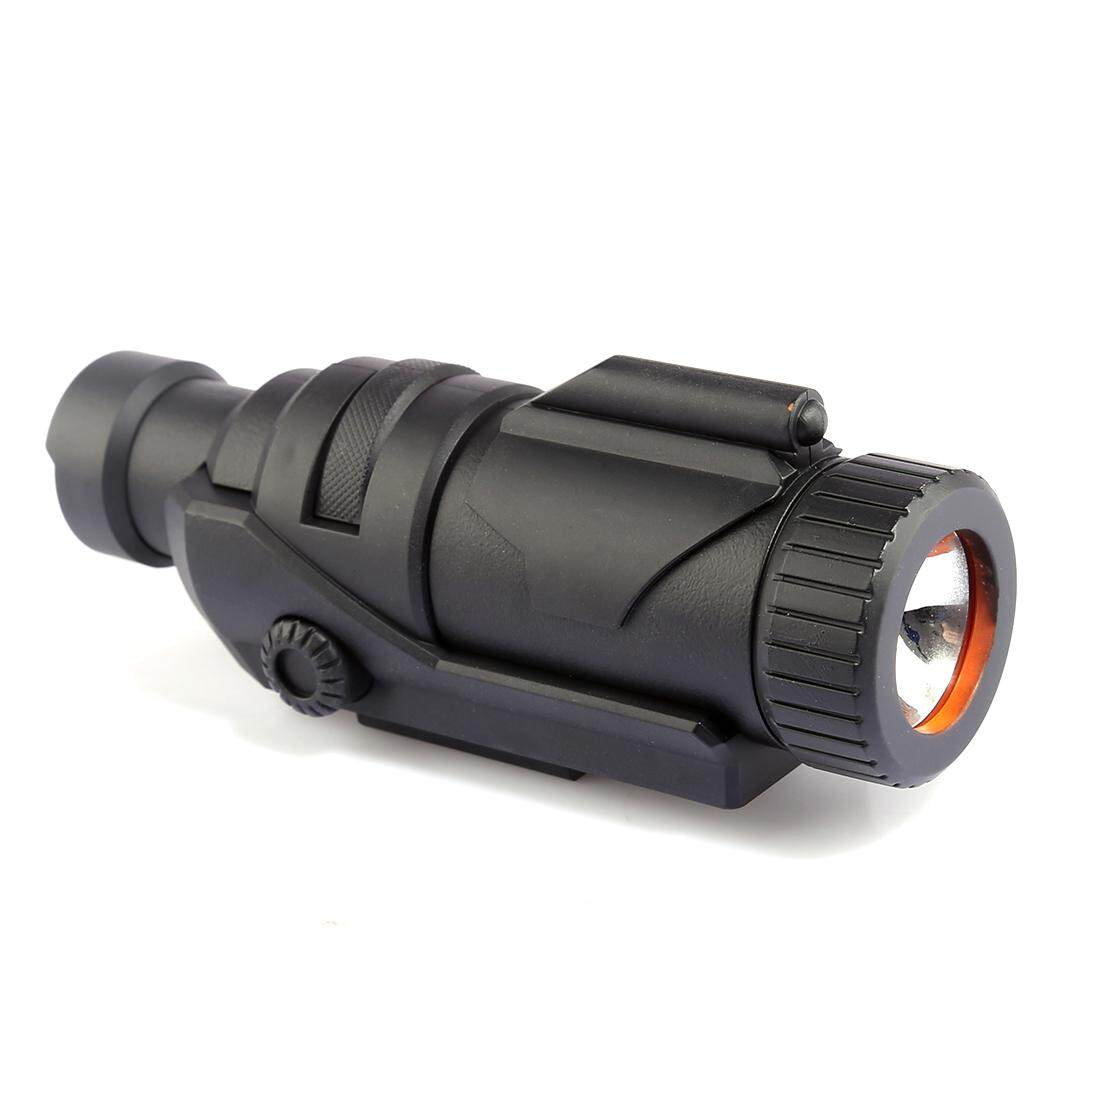 ... 360WISH Modified Part Tactical Flashlight for Nerf Elite Series - Black - 5